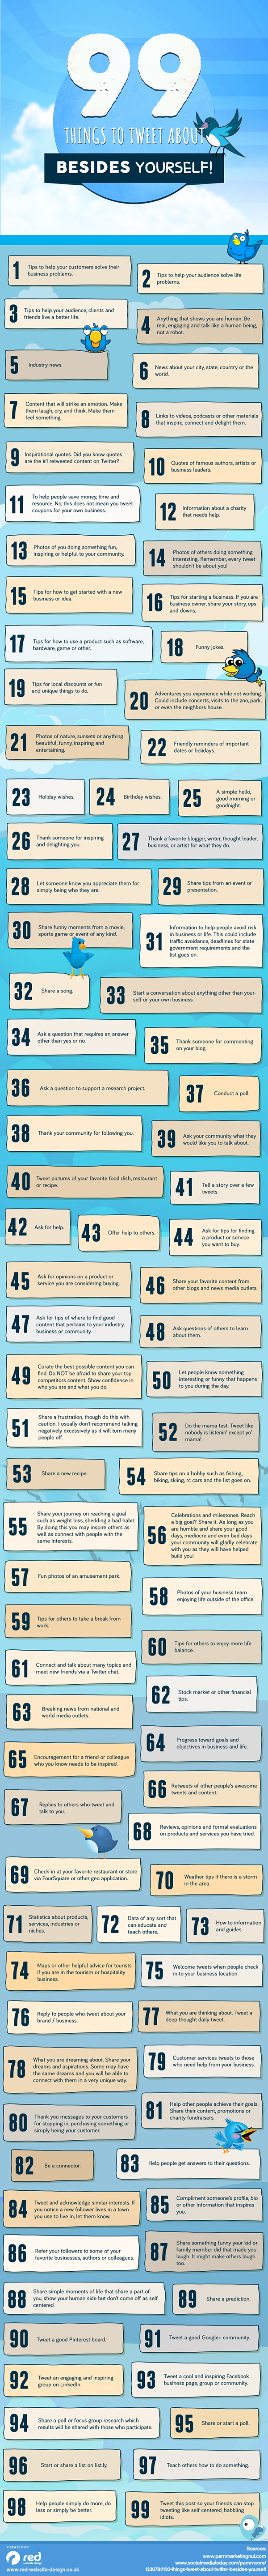 99 Things to Tweet About Besides Yourself infographic